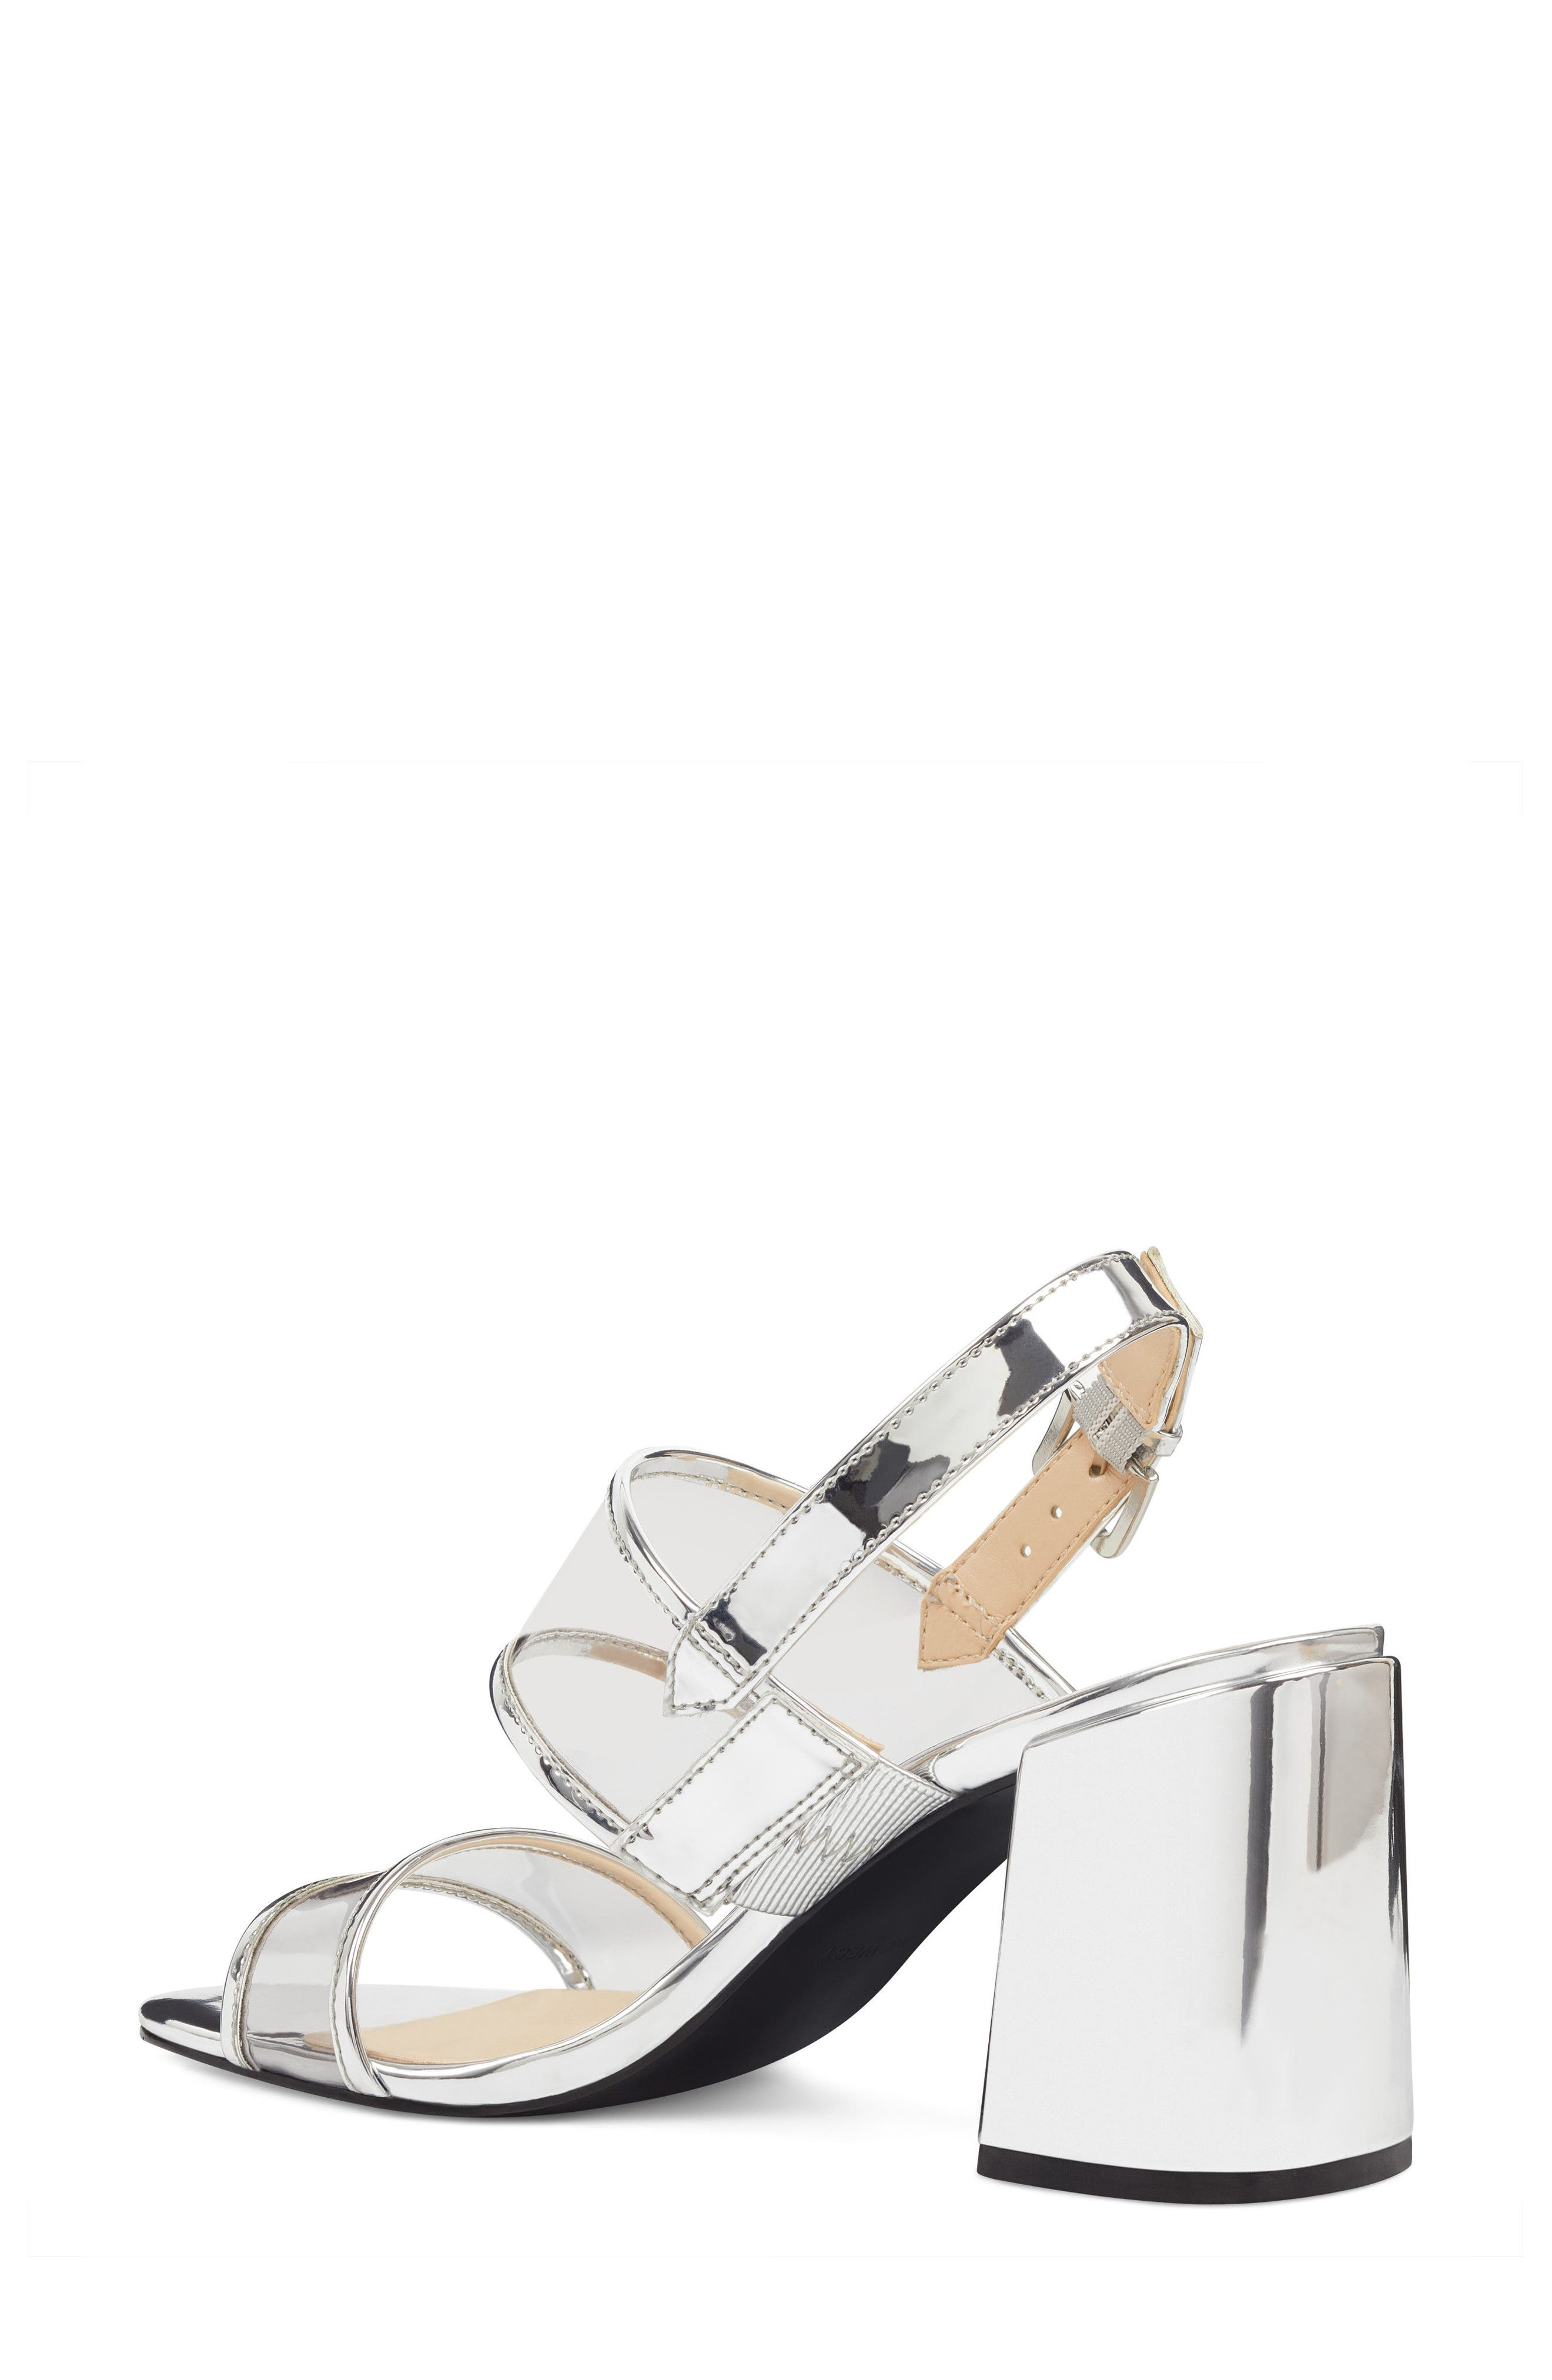 Gourdes Block Heel Sandal,                             Alternate thumbnail 2, color,                             Clear Grey Multi Faux Leather